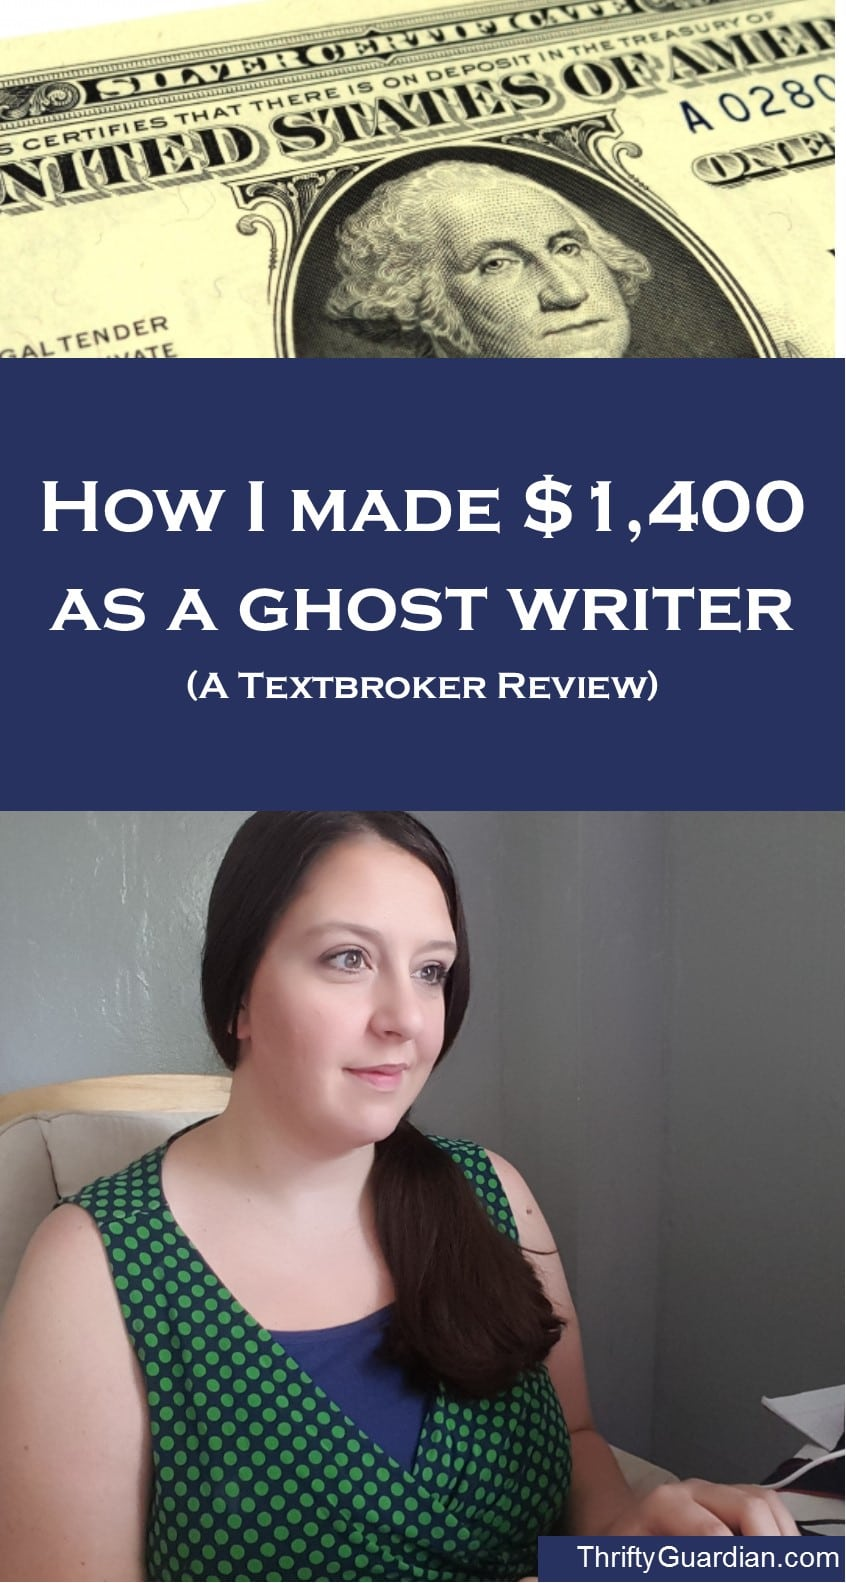 A Review of Textbroker, how to make money as a ghostwriter, make money from home, make money online, make money freelancing, make money blogging